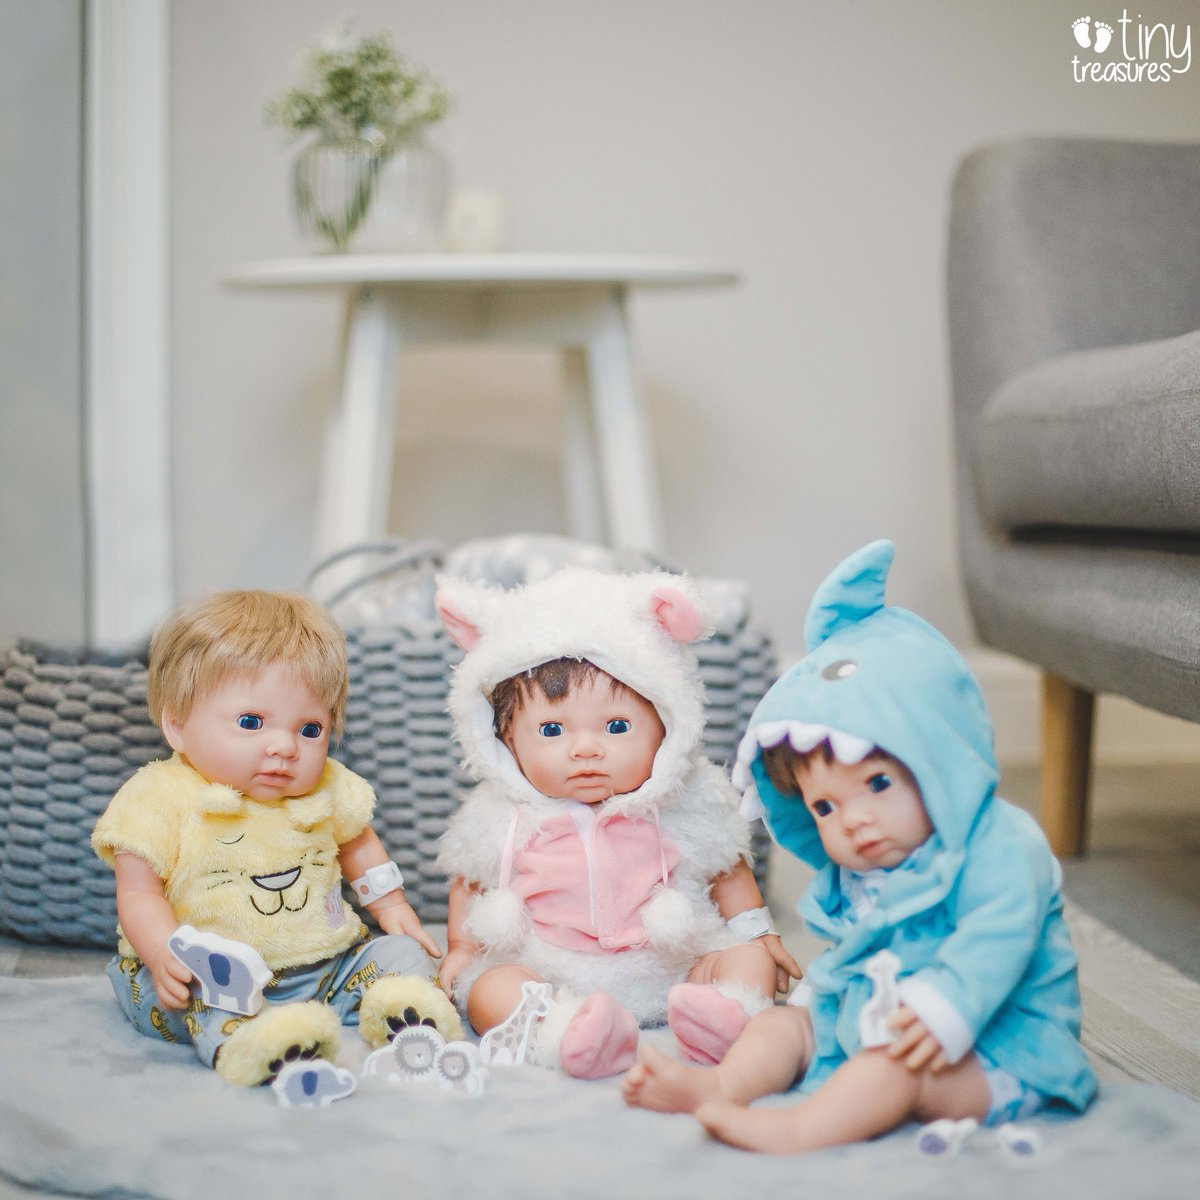 These Tiny Treasures are looking super comfy in there new outfits! Has your TT got a new outfit yet? . . . . #reborndolls #newborn #roleplay #newbornphotography #tinytreasures #newbornphotoshoot #rebornbaby #dollstagram #dolls #babies #outfitofthedaypic.twitter.com/oqlakgFPZk